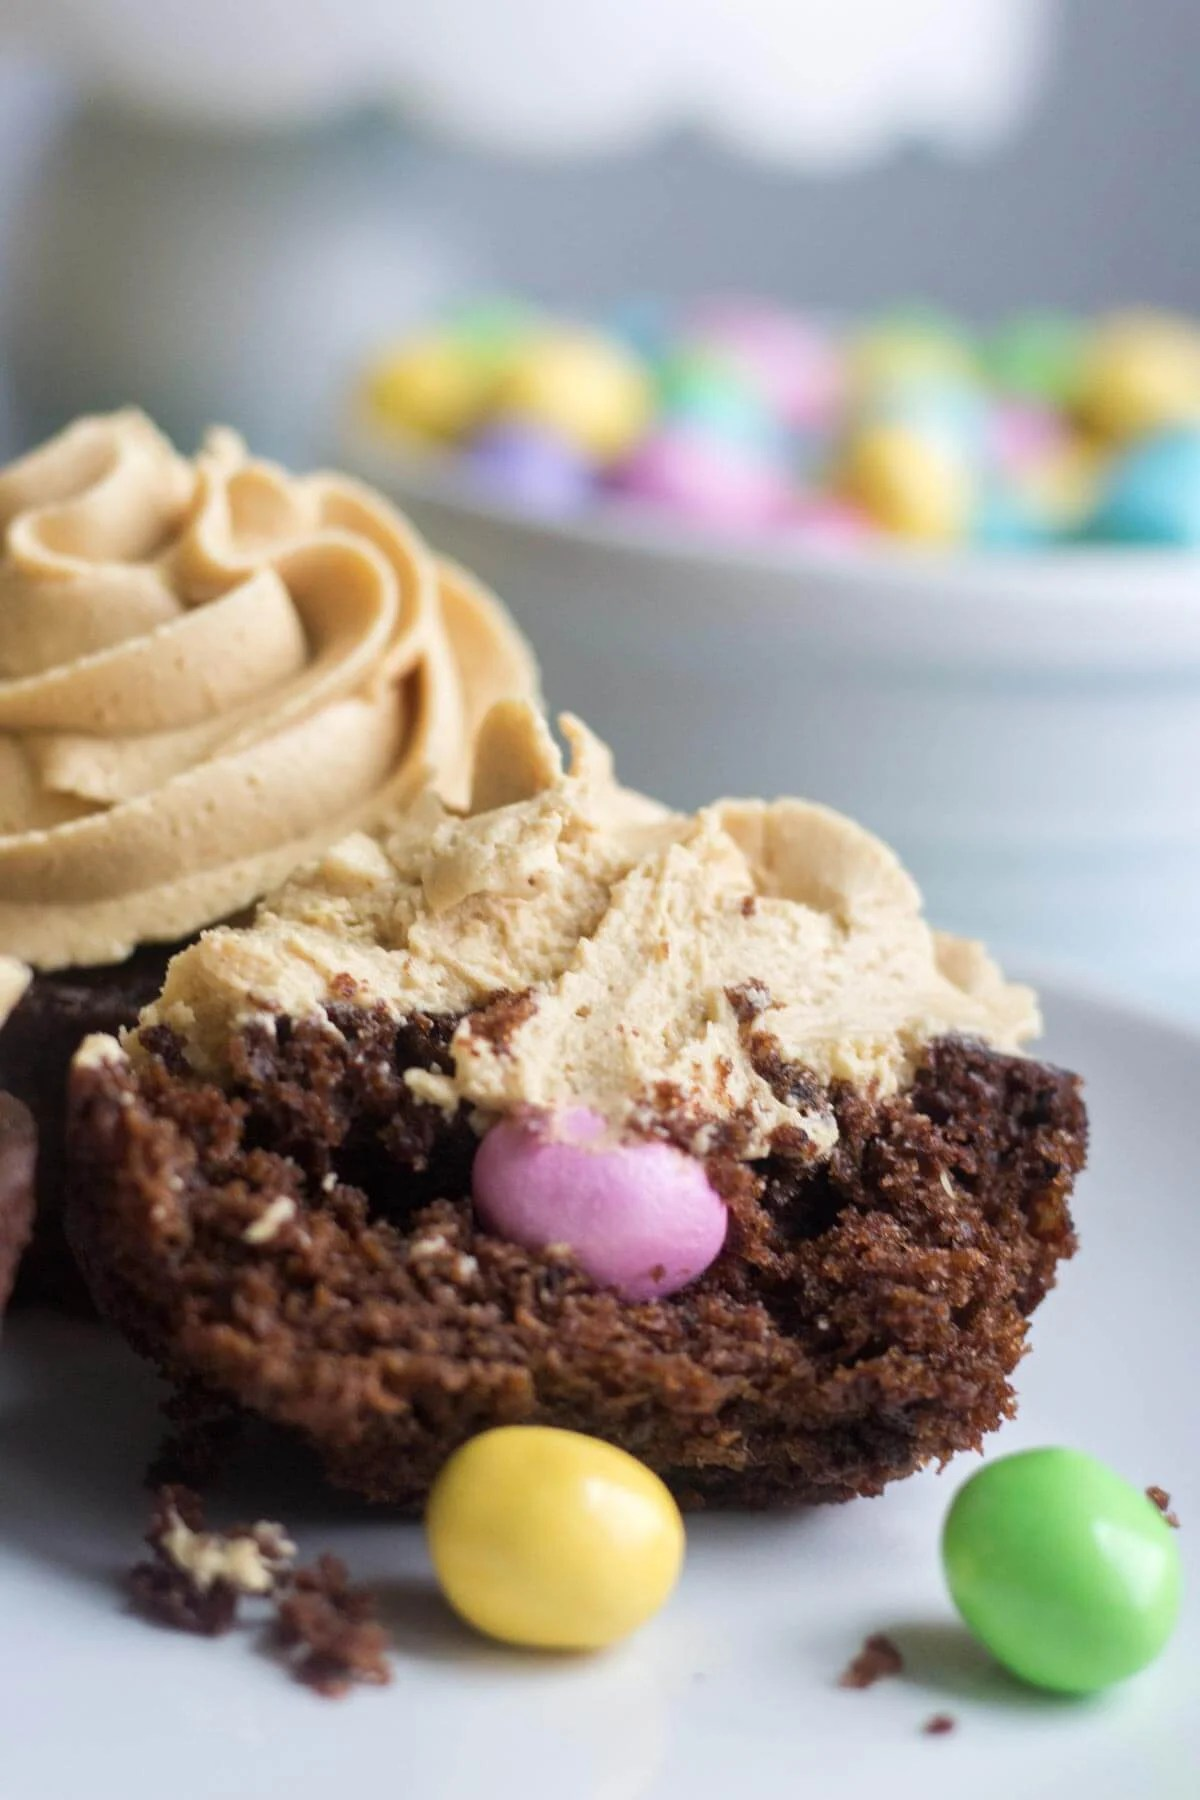 Light and fluffy chocolate cupcakes are topped with a sweet and creamy peanut butter frosting. Plus, there's a fun Easter surprise on the inside! These Chocolate Peanut Butter Piñata Cupcakes will surprise and delight all of your friends and family.